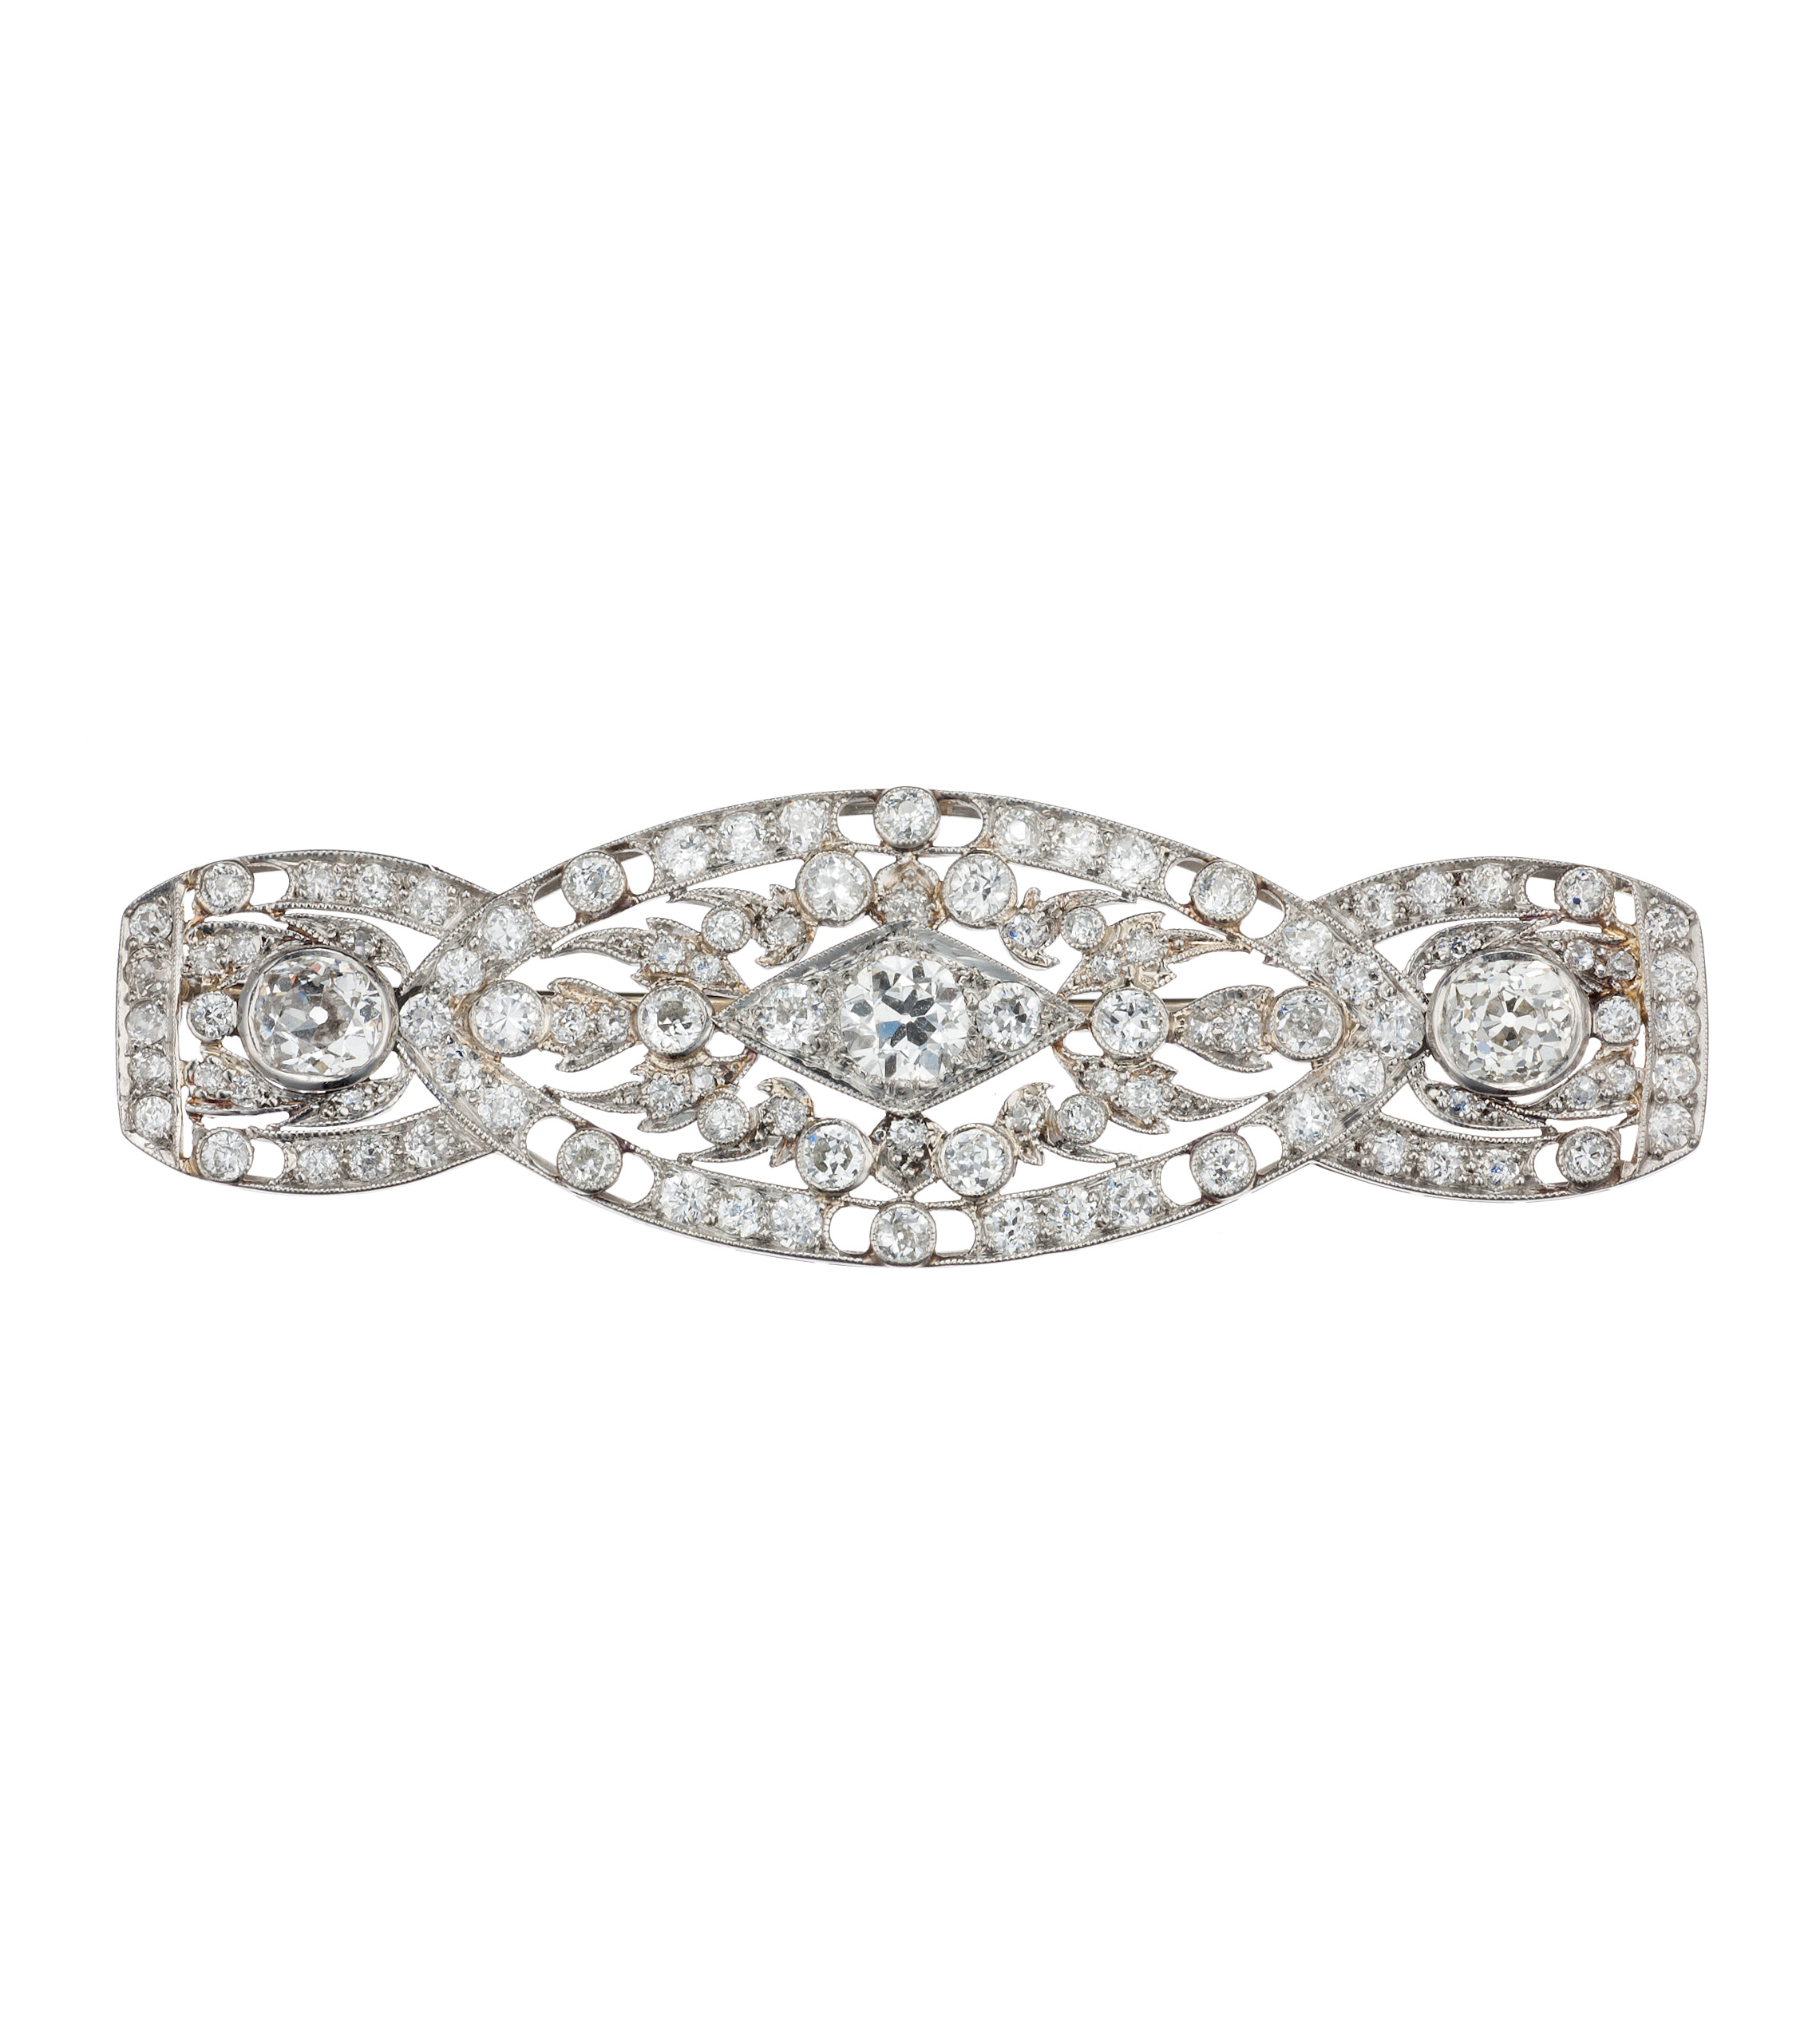 Diamond art deco brooch in platinum and 14-karat white gold